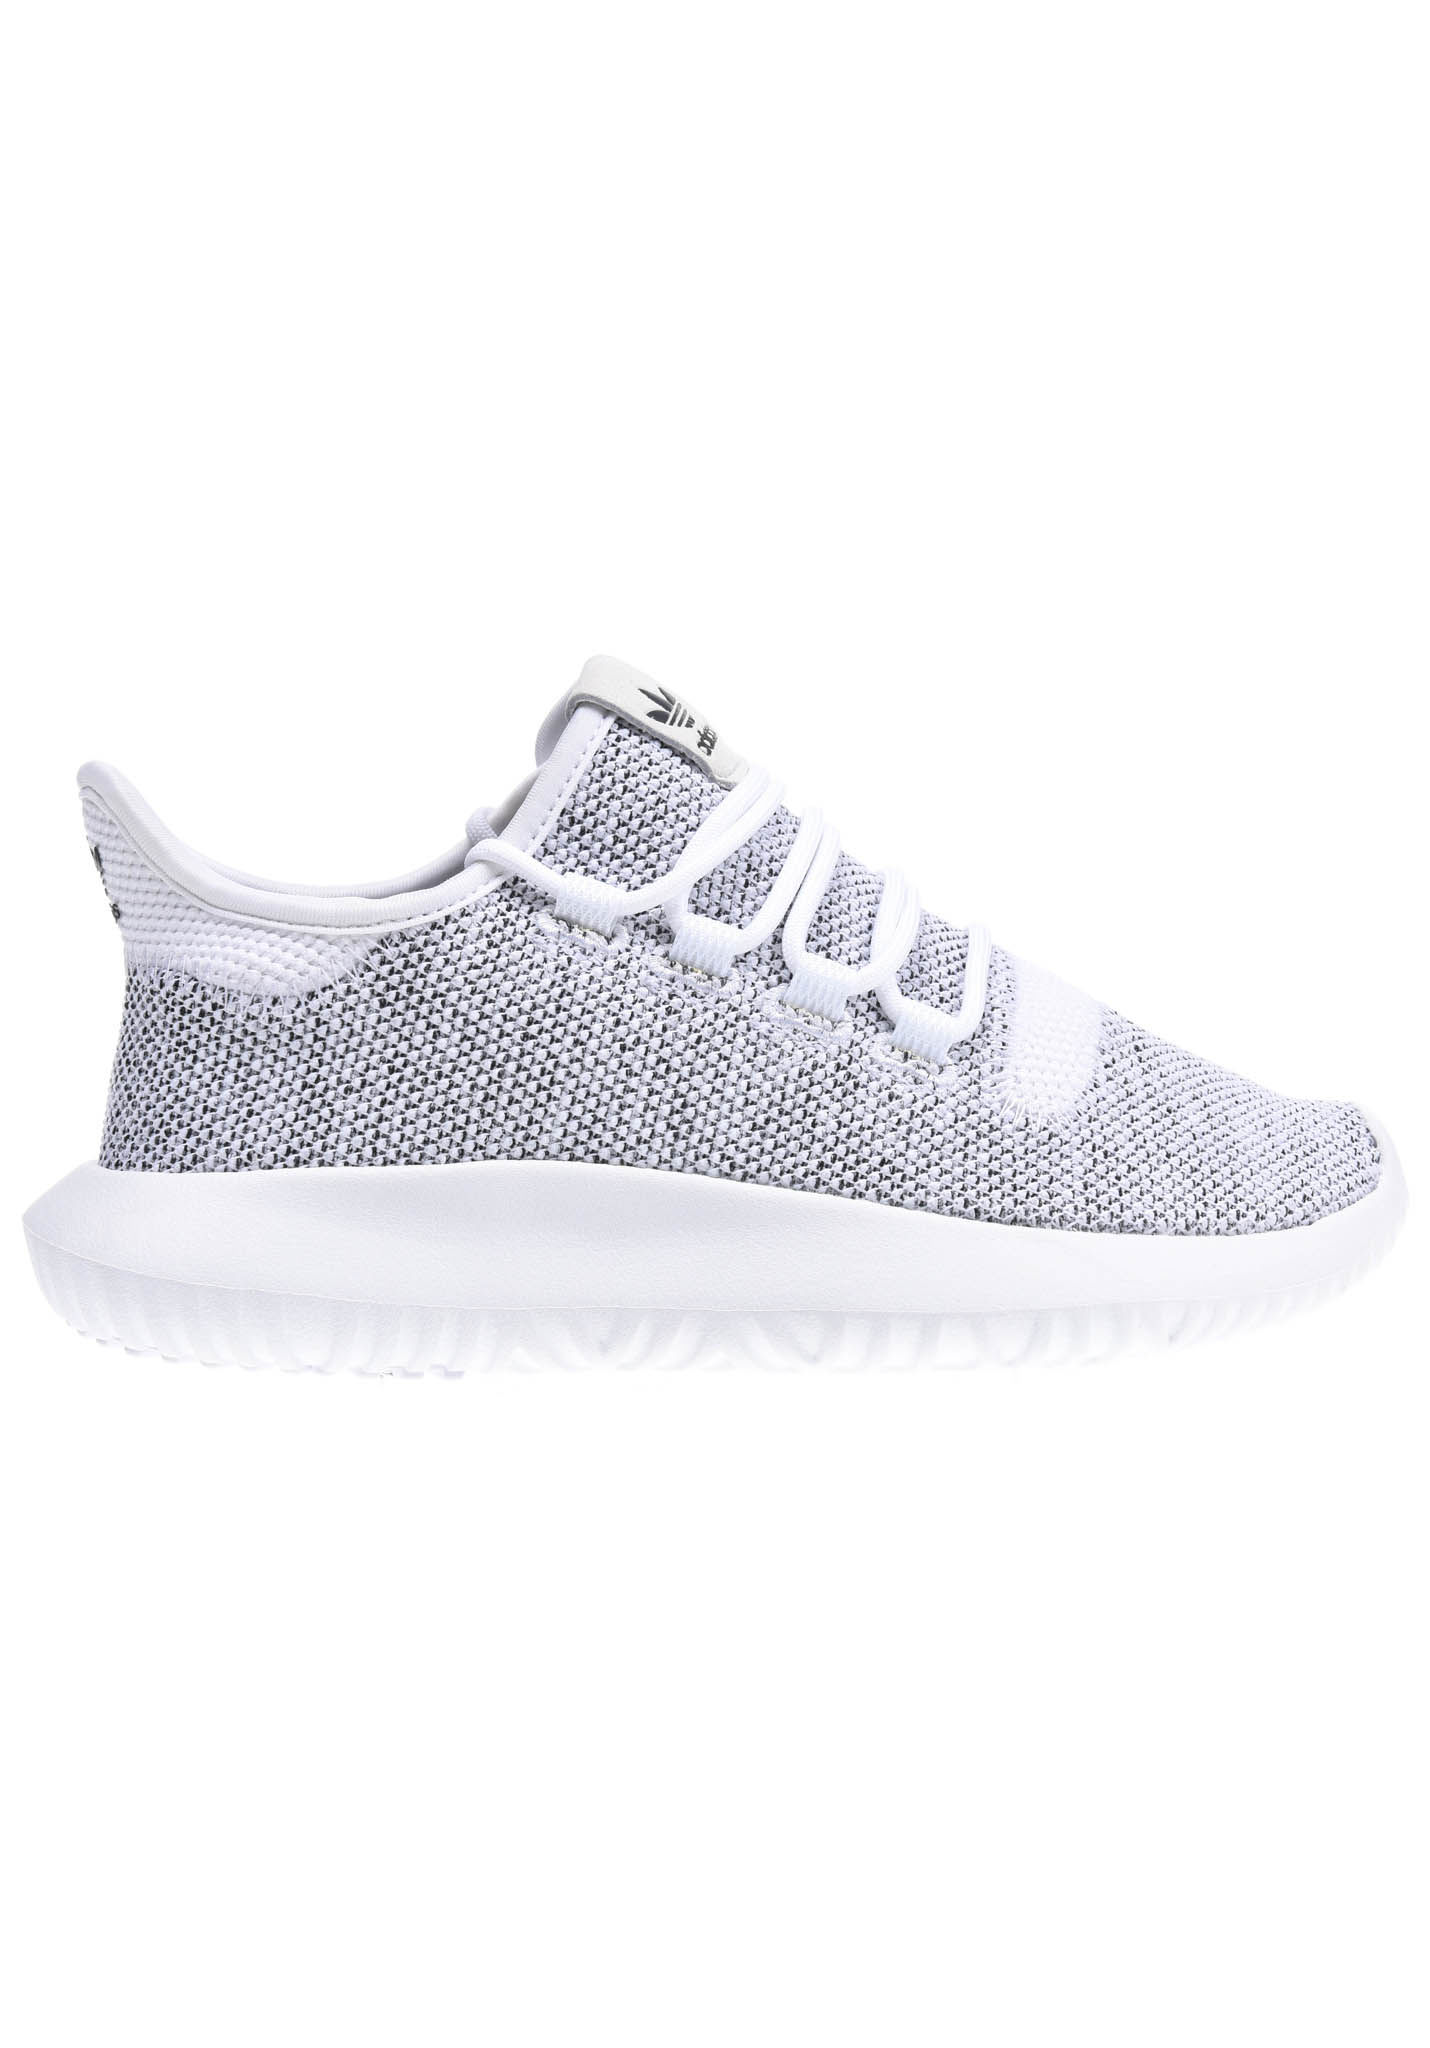 adidas Tubular Shadow Knit (Infant/Toddler) : Footwear: YCMC